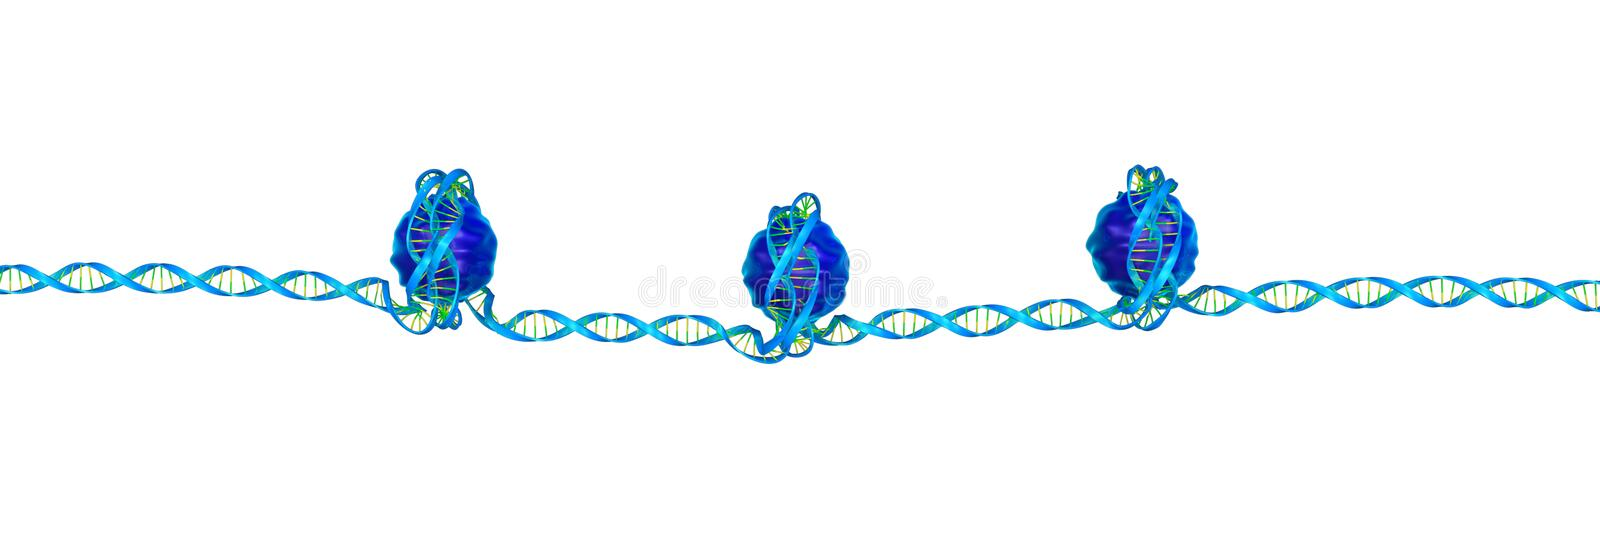 Nucleosome. A nucleosome is a basic unit of DNA packaging in eukaryotes, consisting of a segment of DNA wound in sequence around eight[1] histone protein cores.[ stock illustration